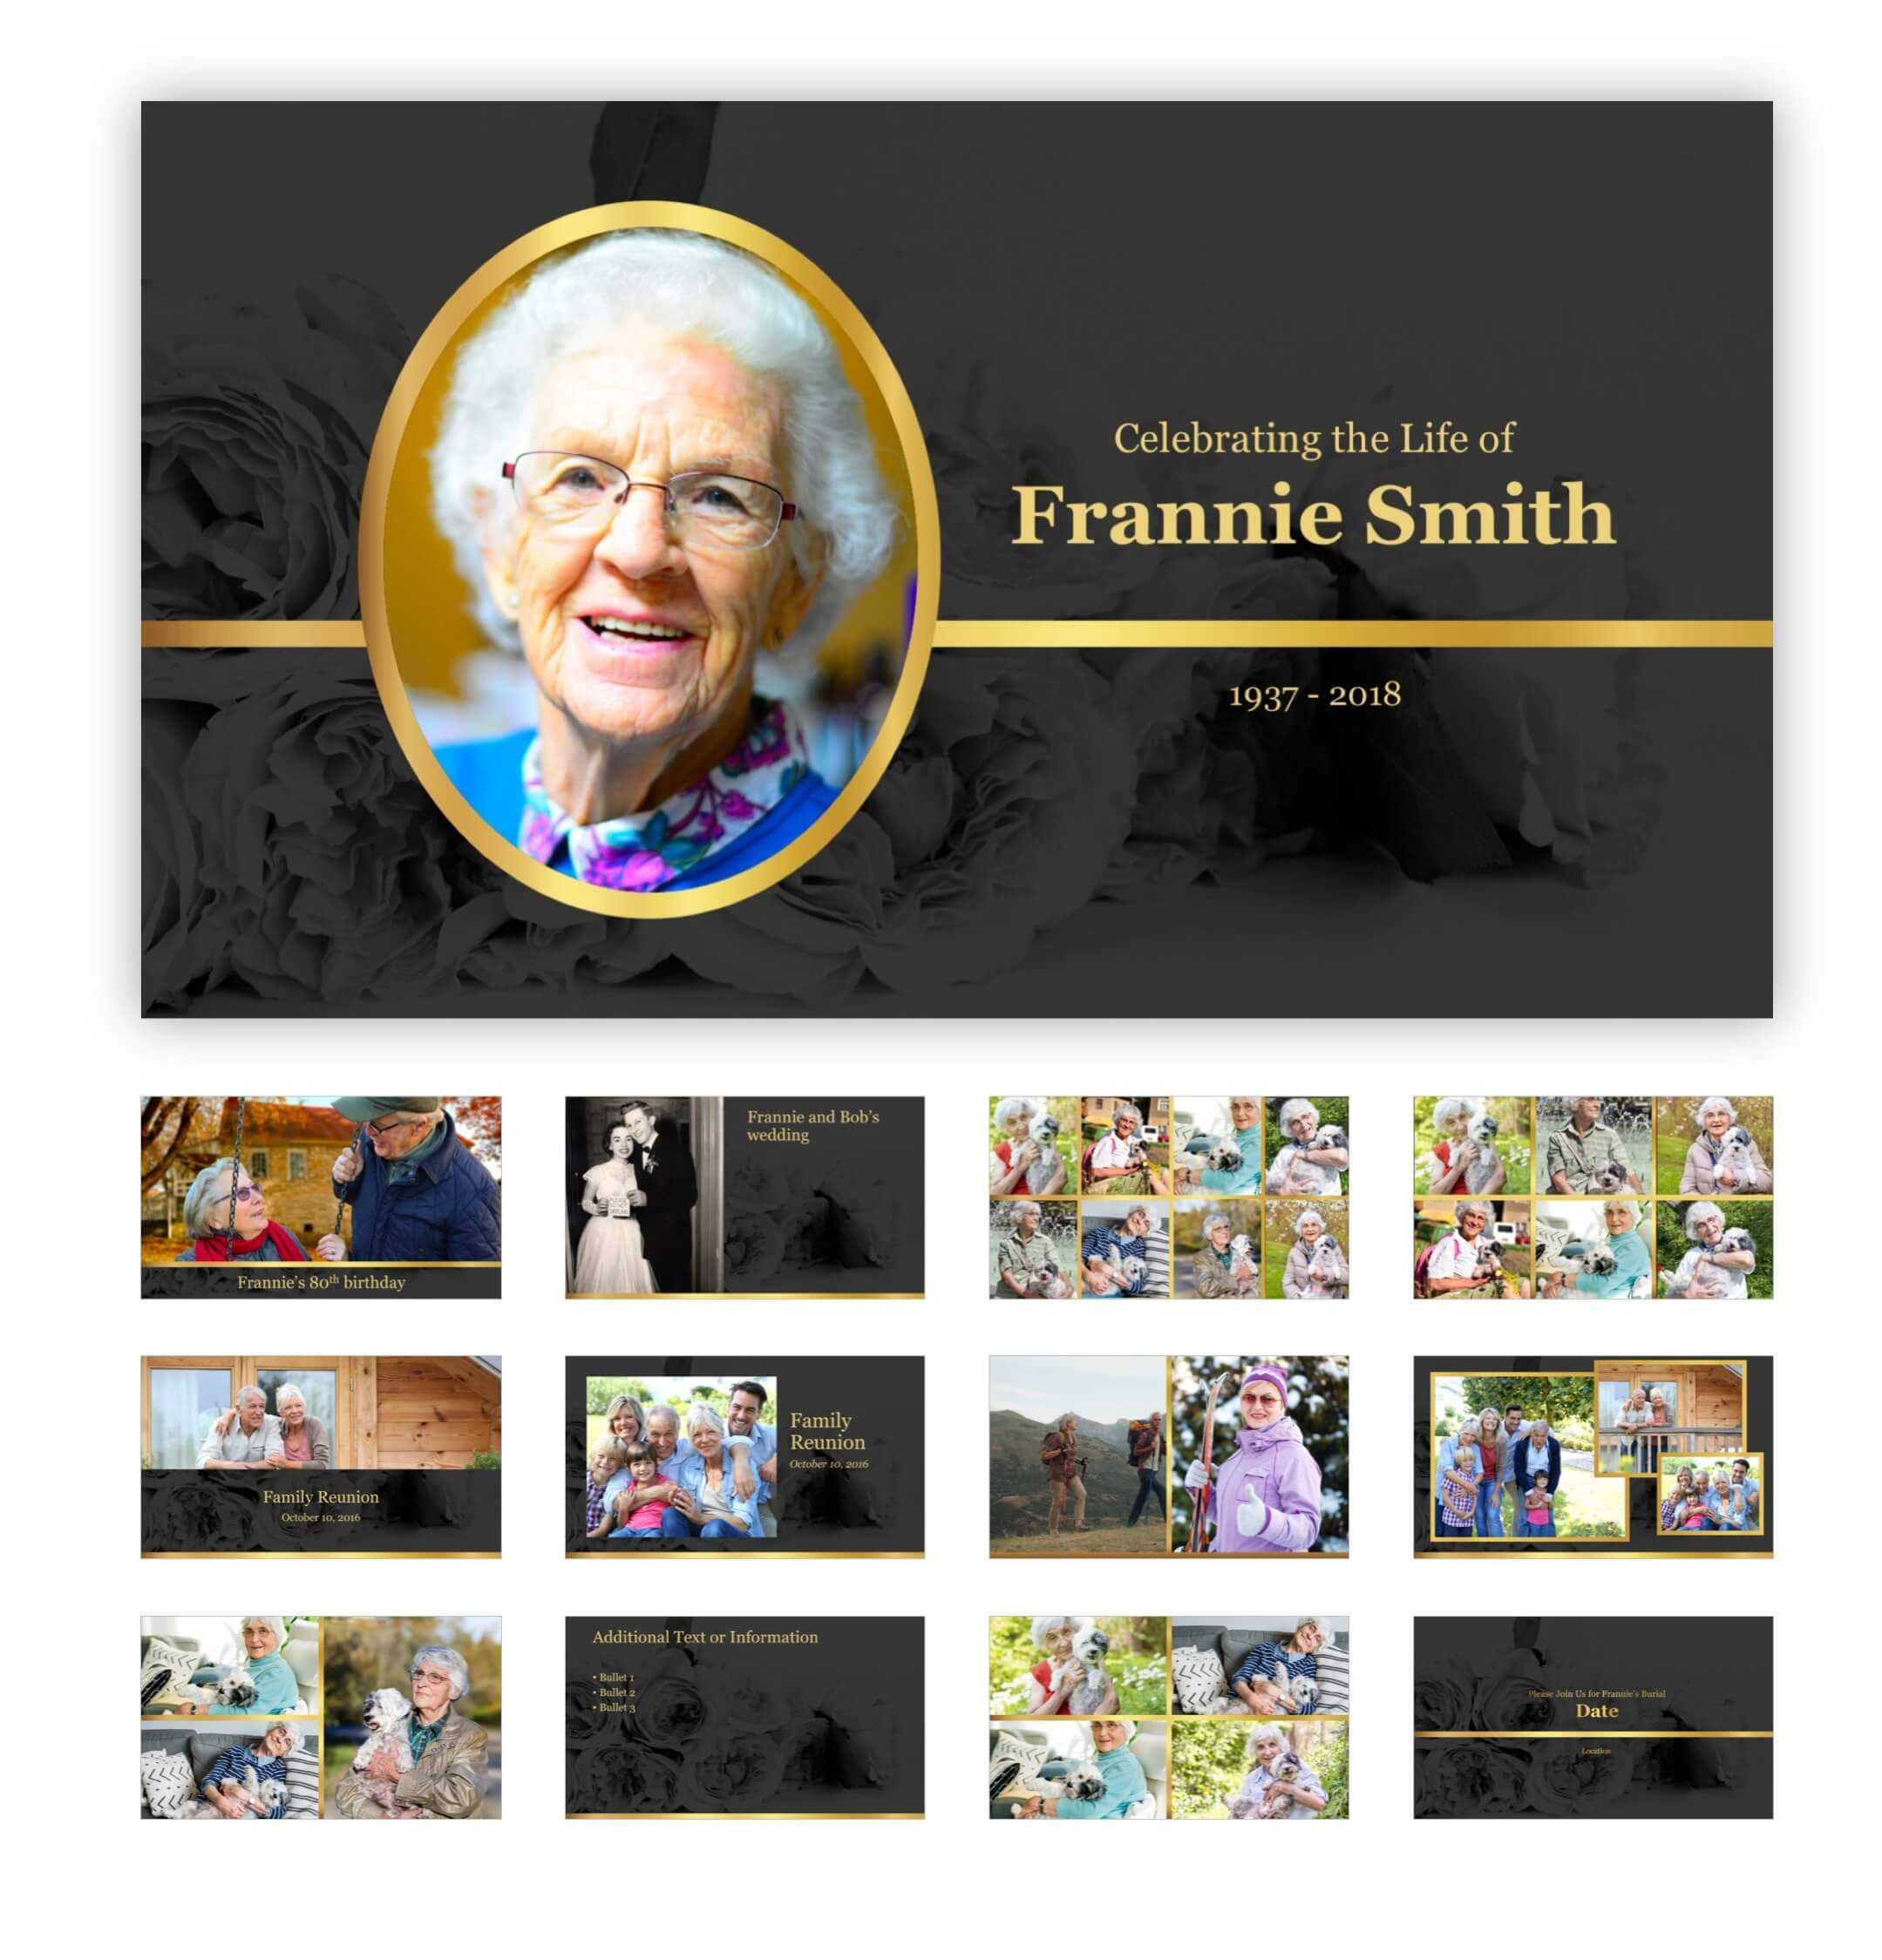 Best Funeral Powerpoint Templates Of 2019 | Adrienne Johnston Regarding Funeral Powerpoint Templates